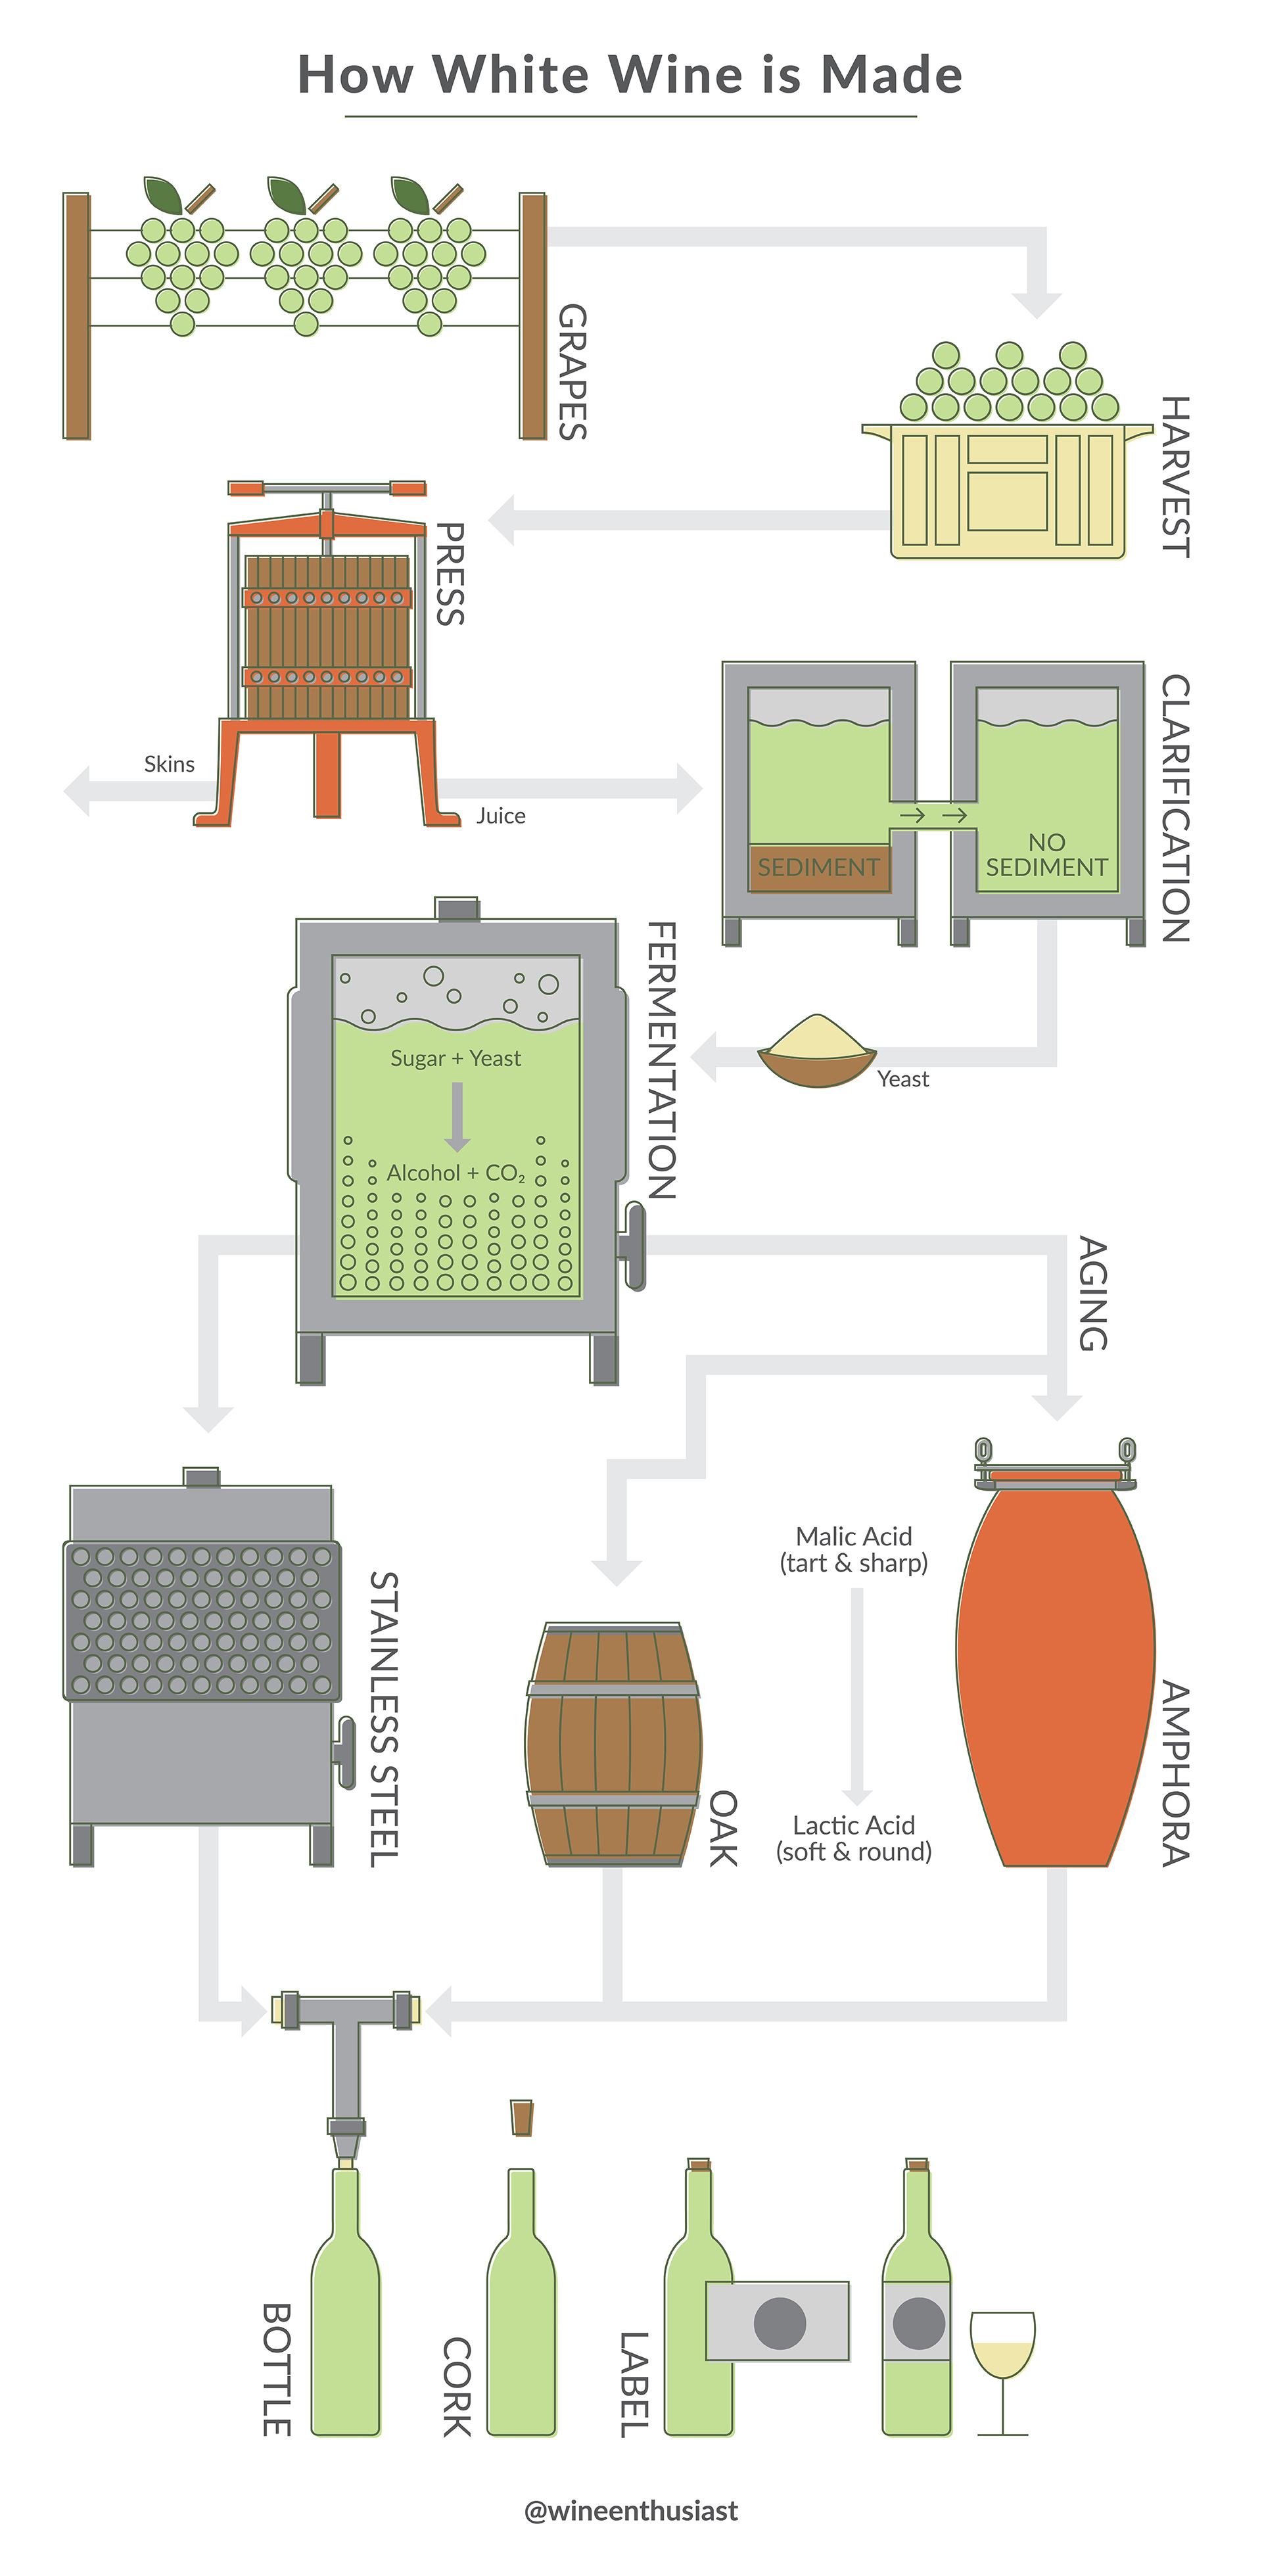 Infographic of the steps that going into how white wine is made